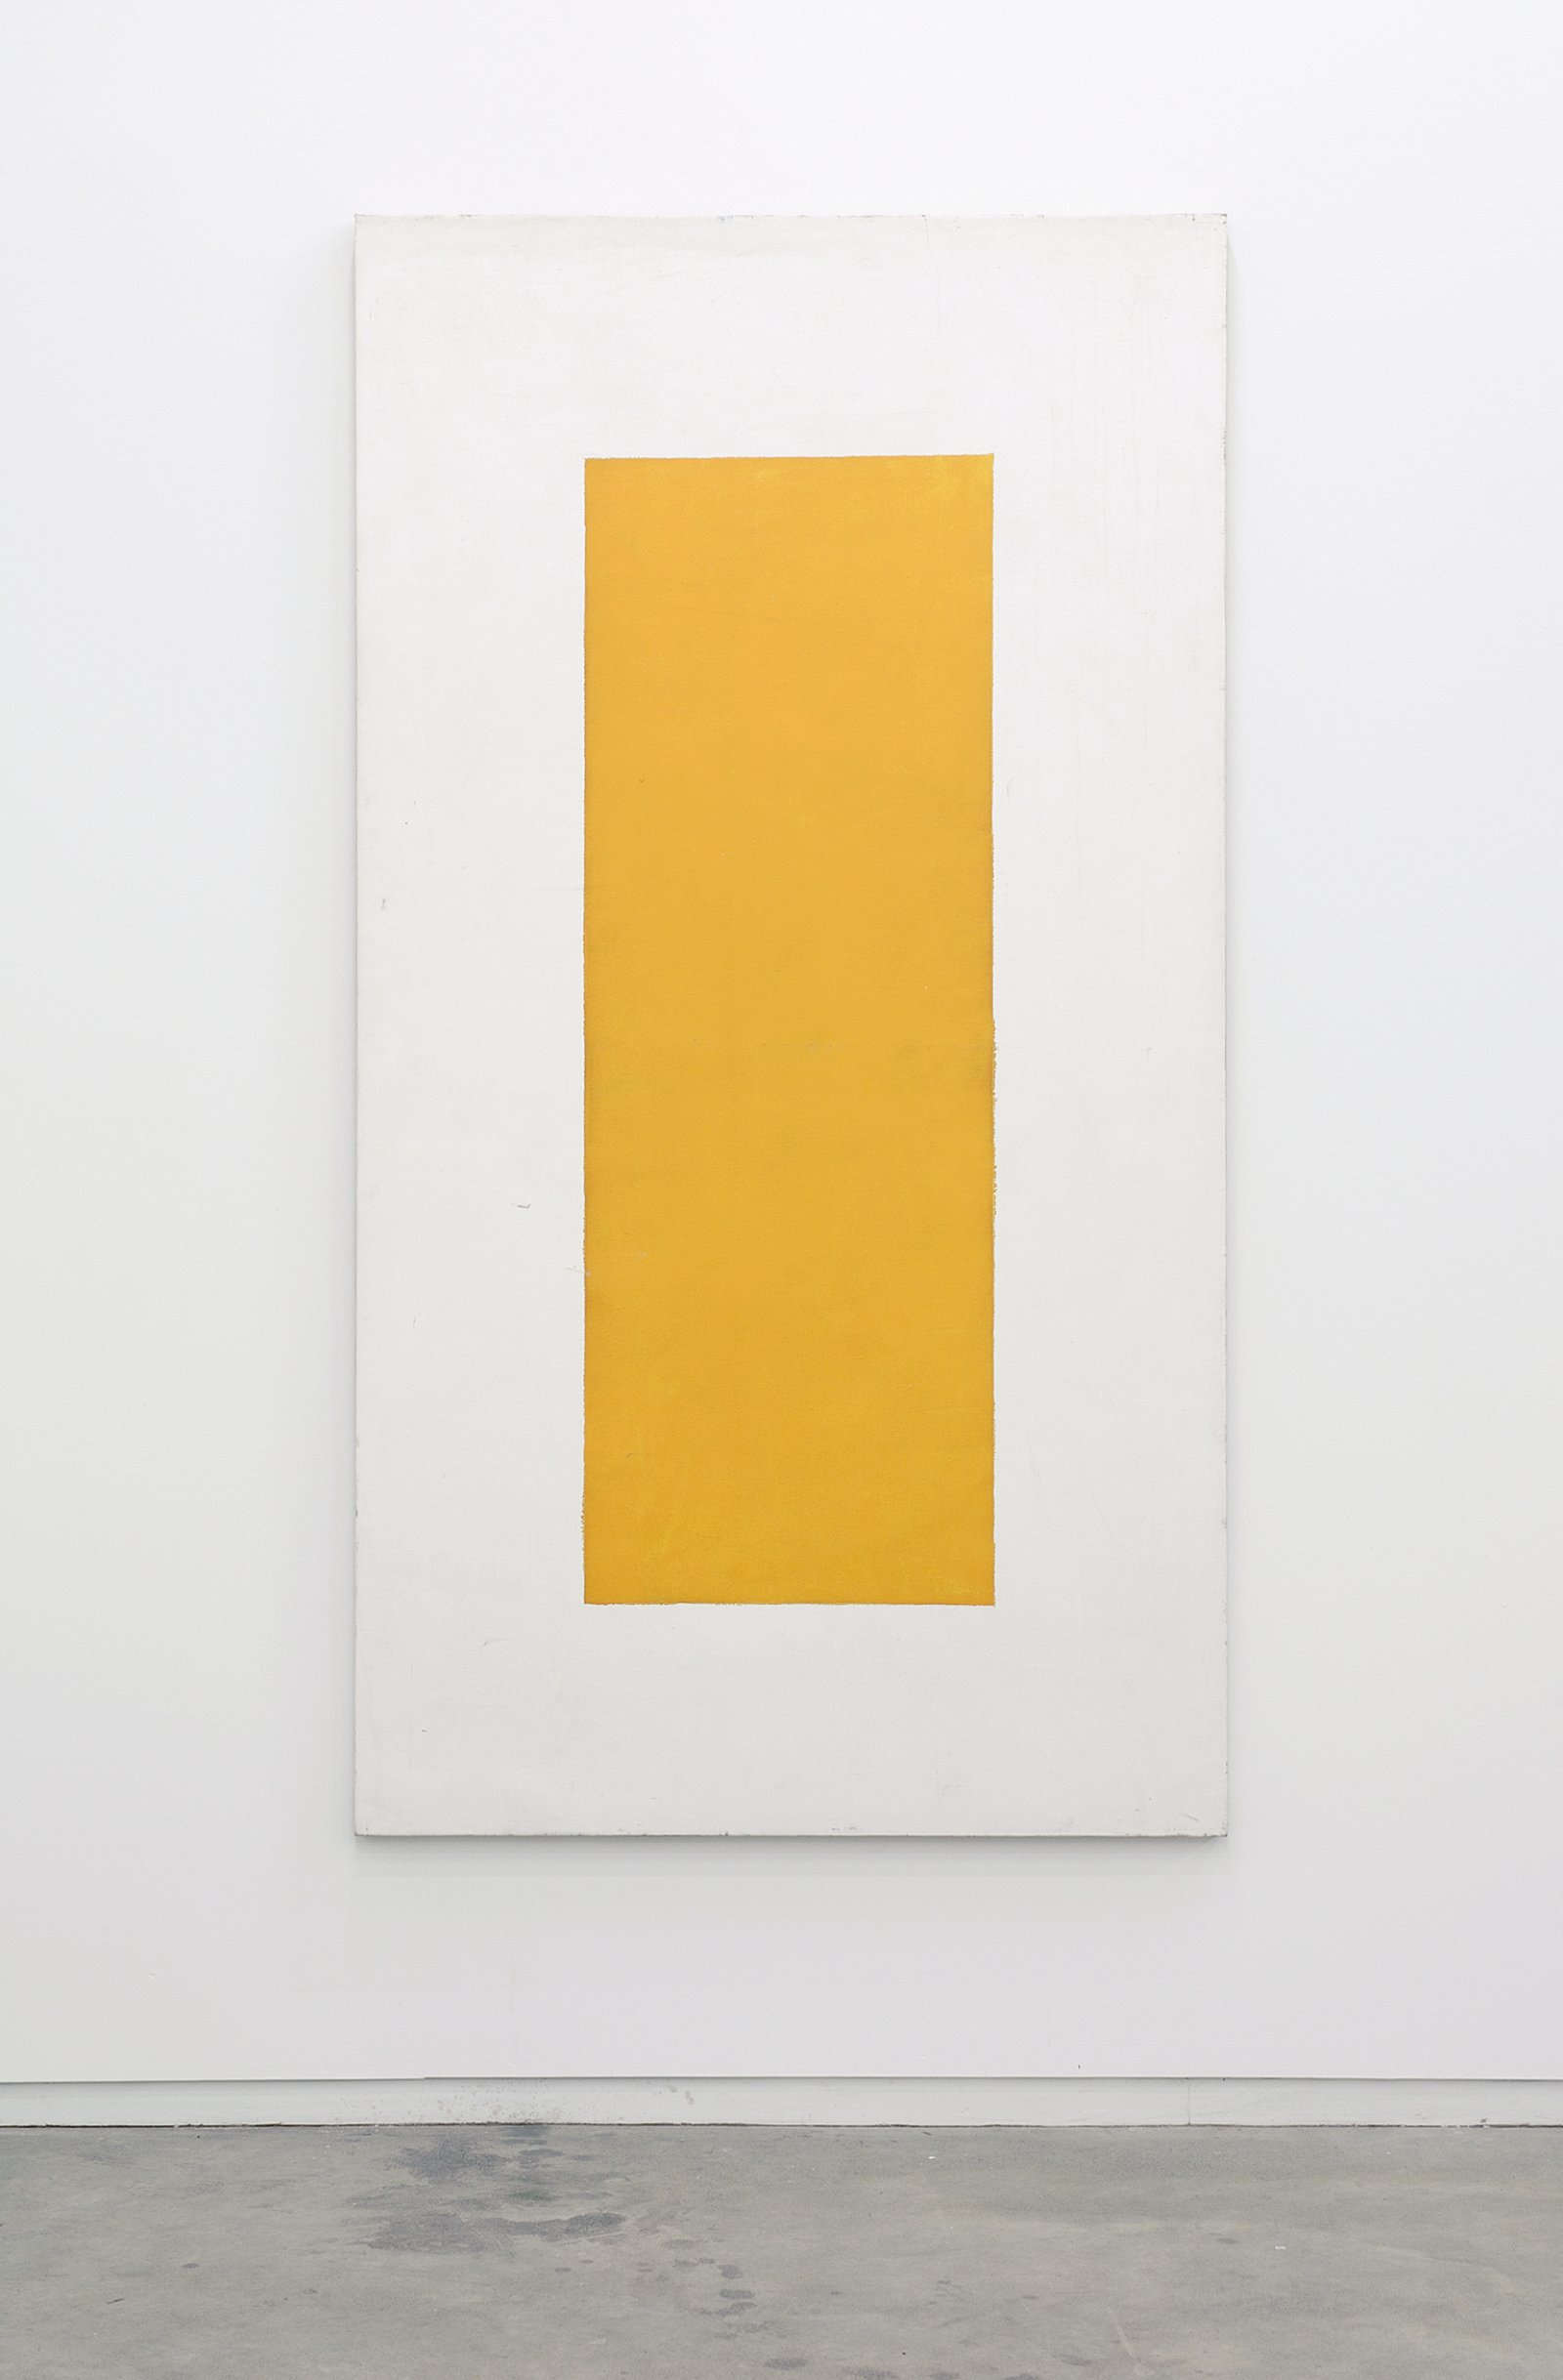 ​Ian Wallace, Untitled (White Monochrome with Orange Rectangle), 1968, acrylic on canvas, 76 x 41 in. (193 x 104 cm) by Ian Wallace